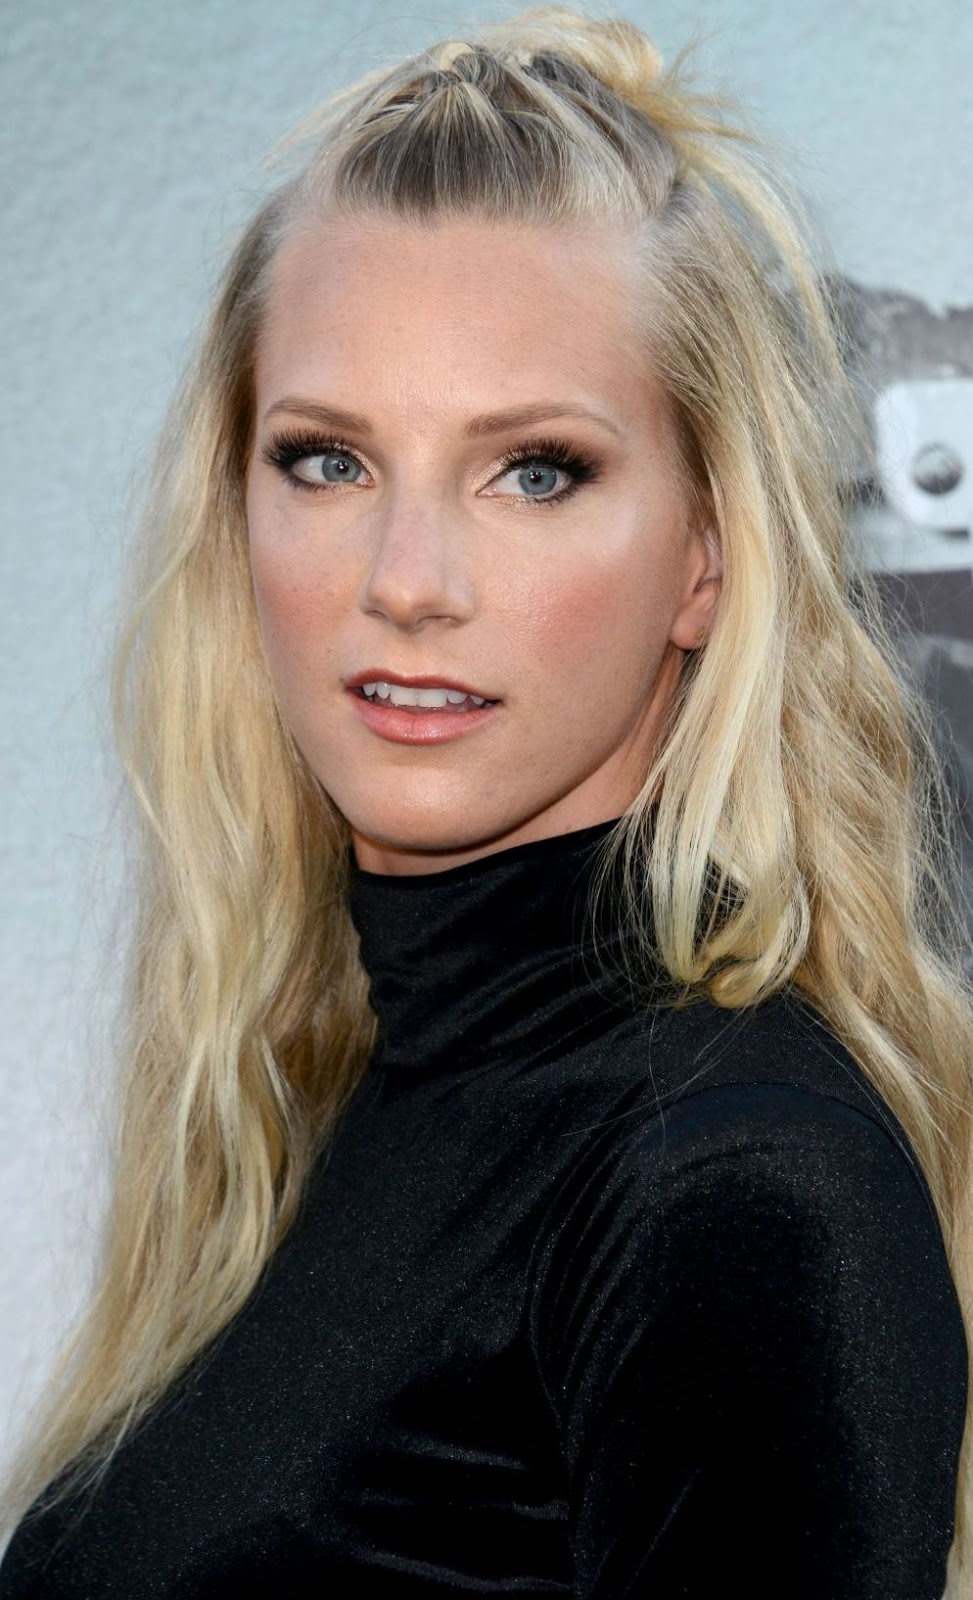 Celebrity Heather Morris nudes (98 photos), Tits, Leaked, Instagram, see through 2006